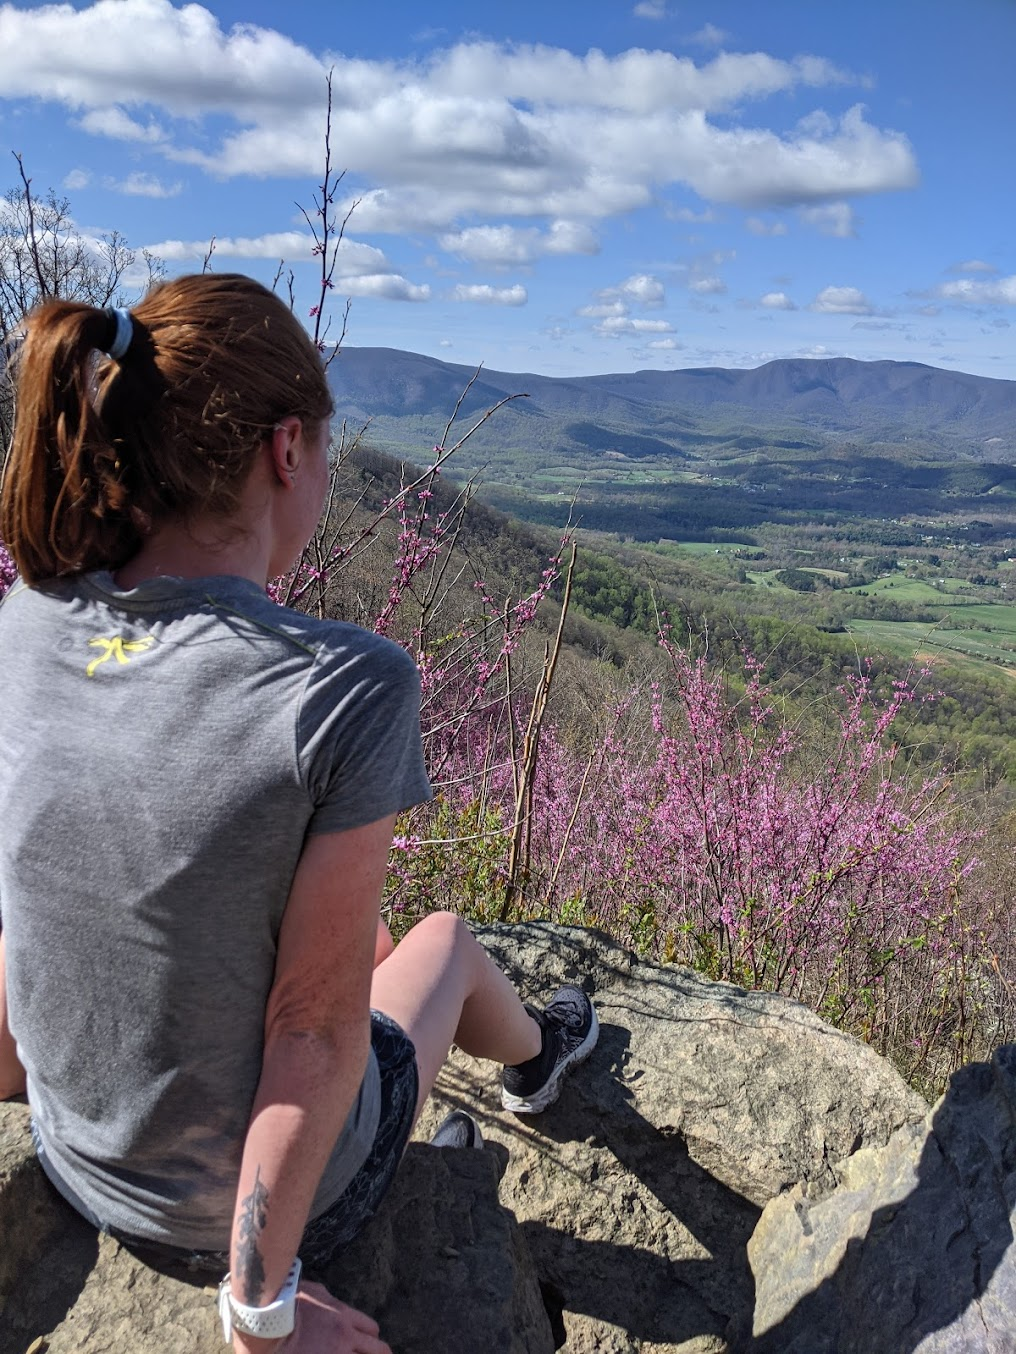 Lara paused to enjoy the view at Shenandoah National Park in early April)